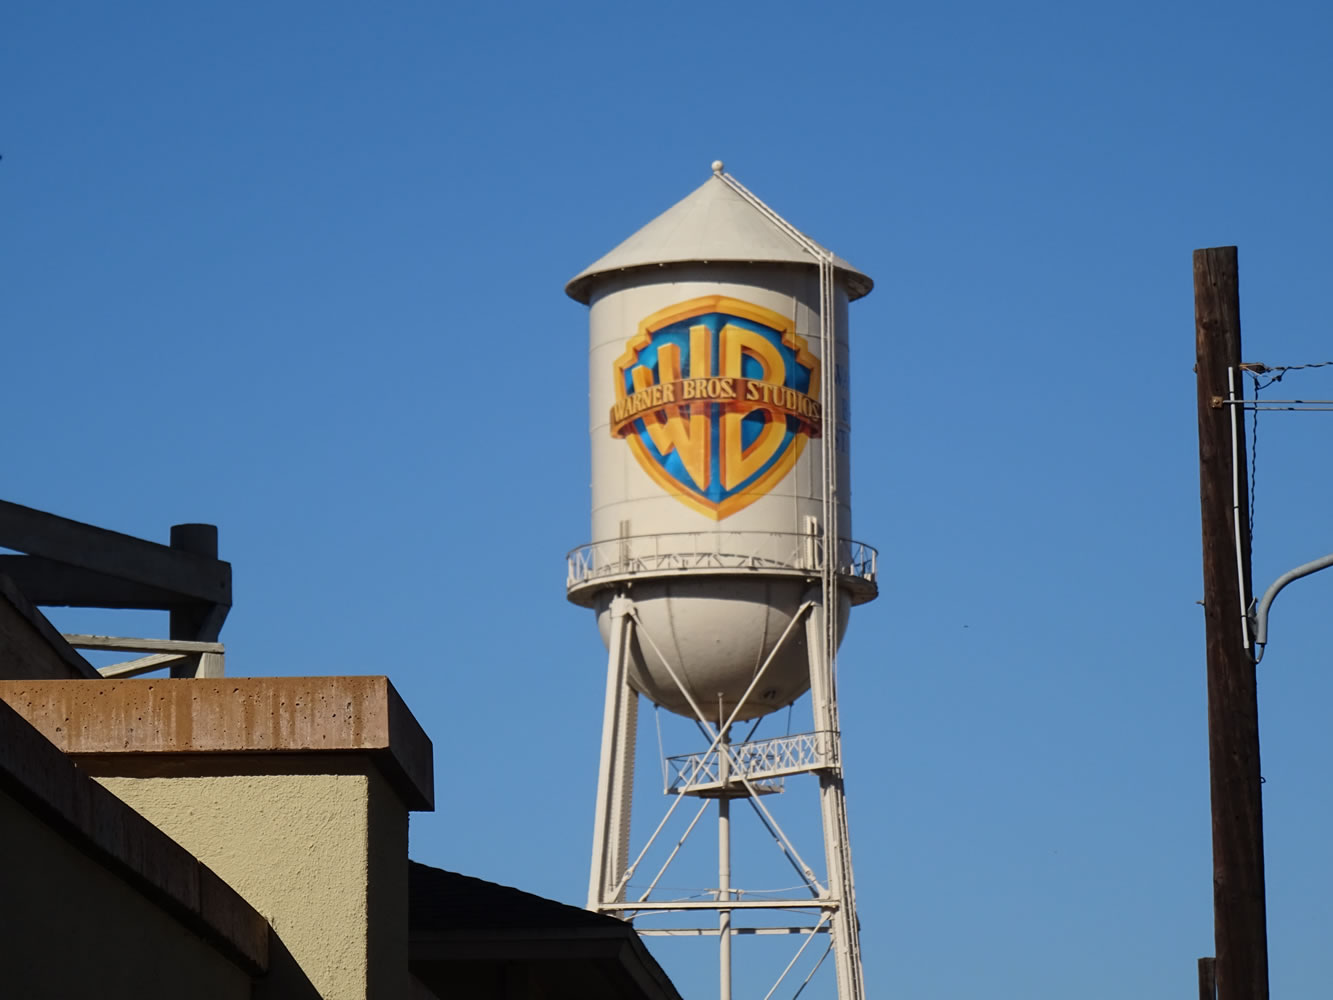 Warner Bros, Water Tank Wallpaper Mural